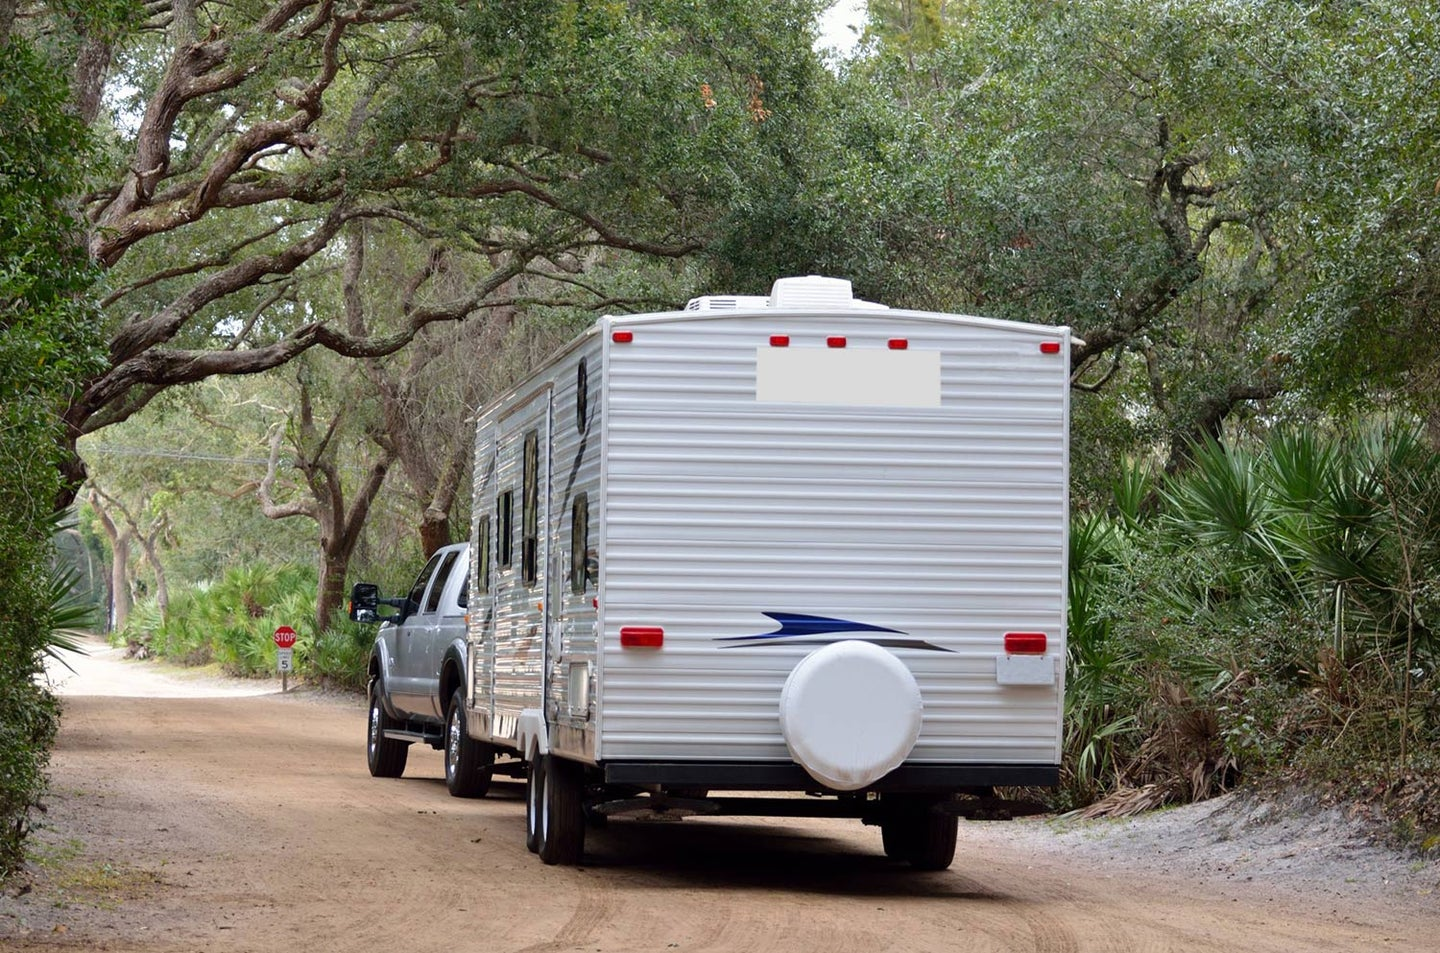 A camper being pulled behind a truck.